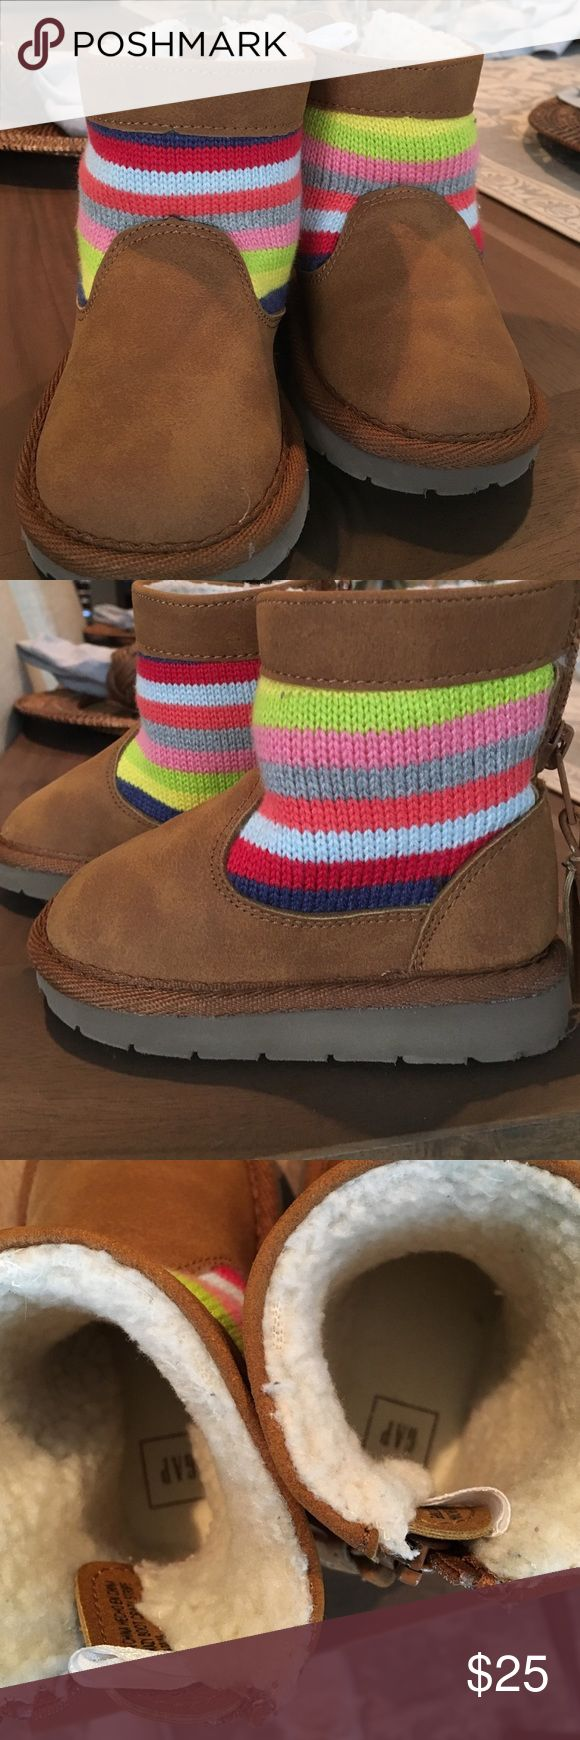 Baby gap crazy shoe crazy stripe boot Baby gap size 6 boot. Super cute and in new condition. GAP Shoes Boots